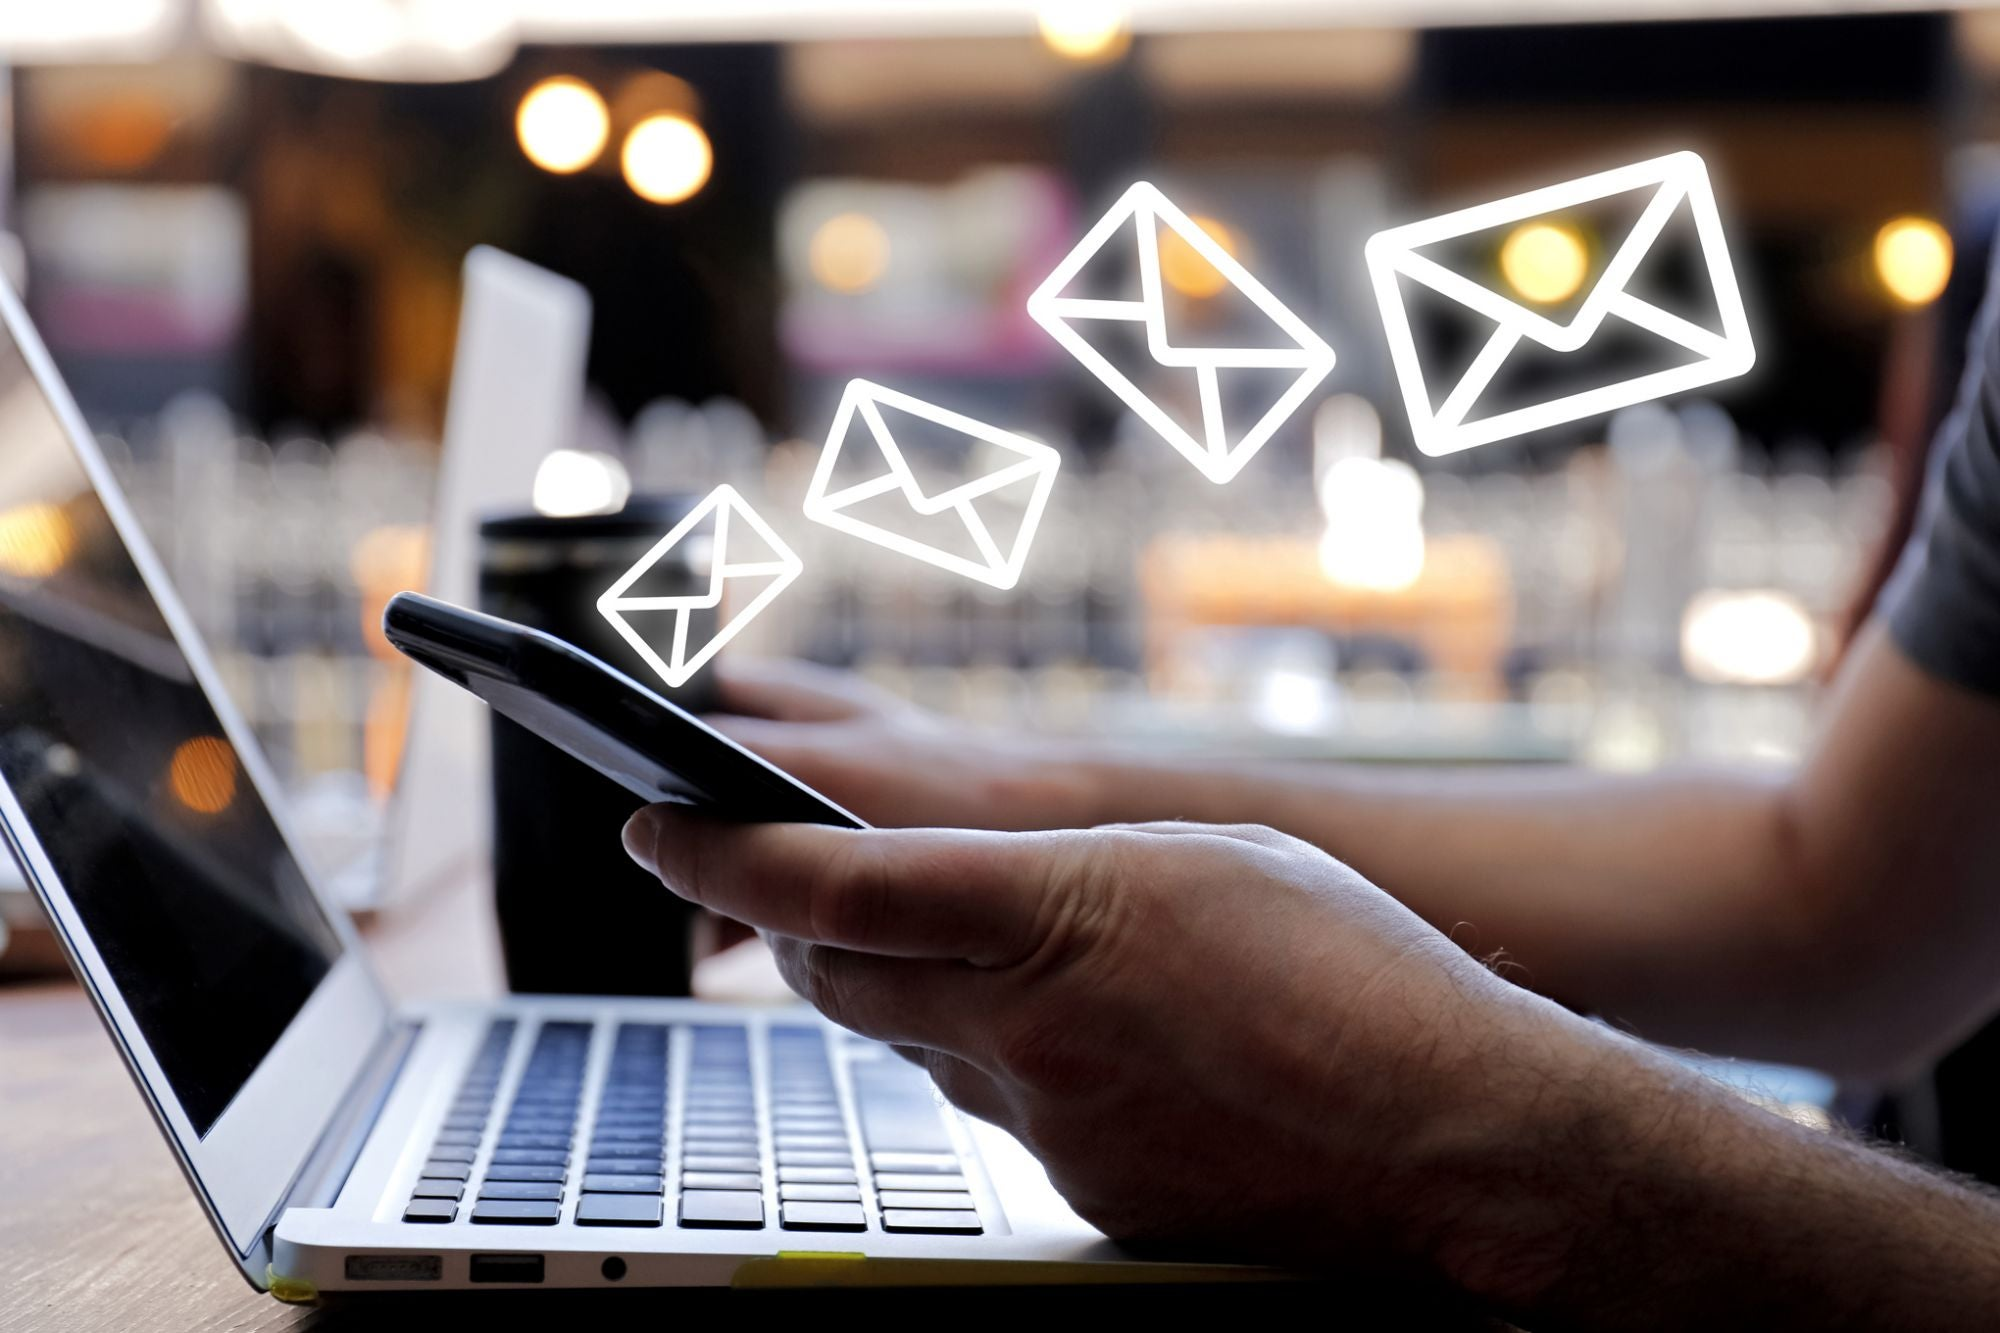 email marketing - Some Email Marketing Tips From Our Copywriting Team